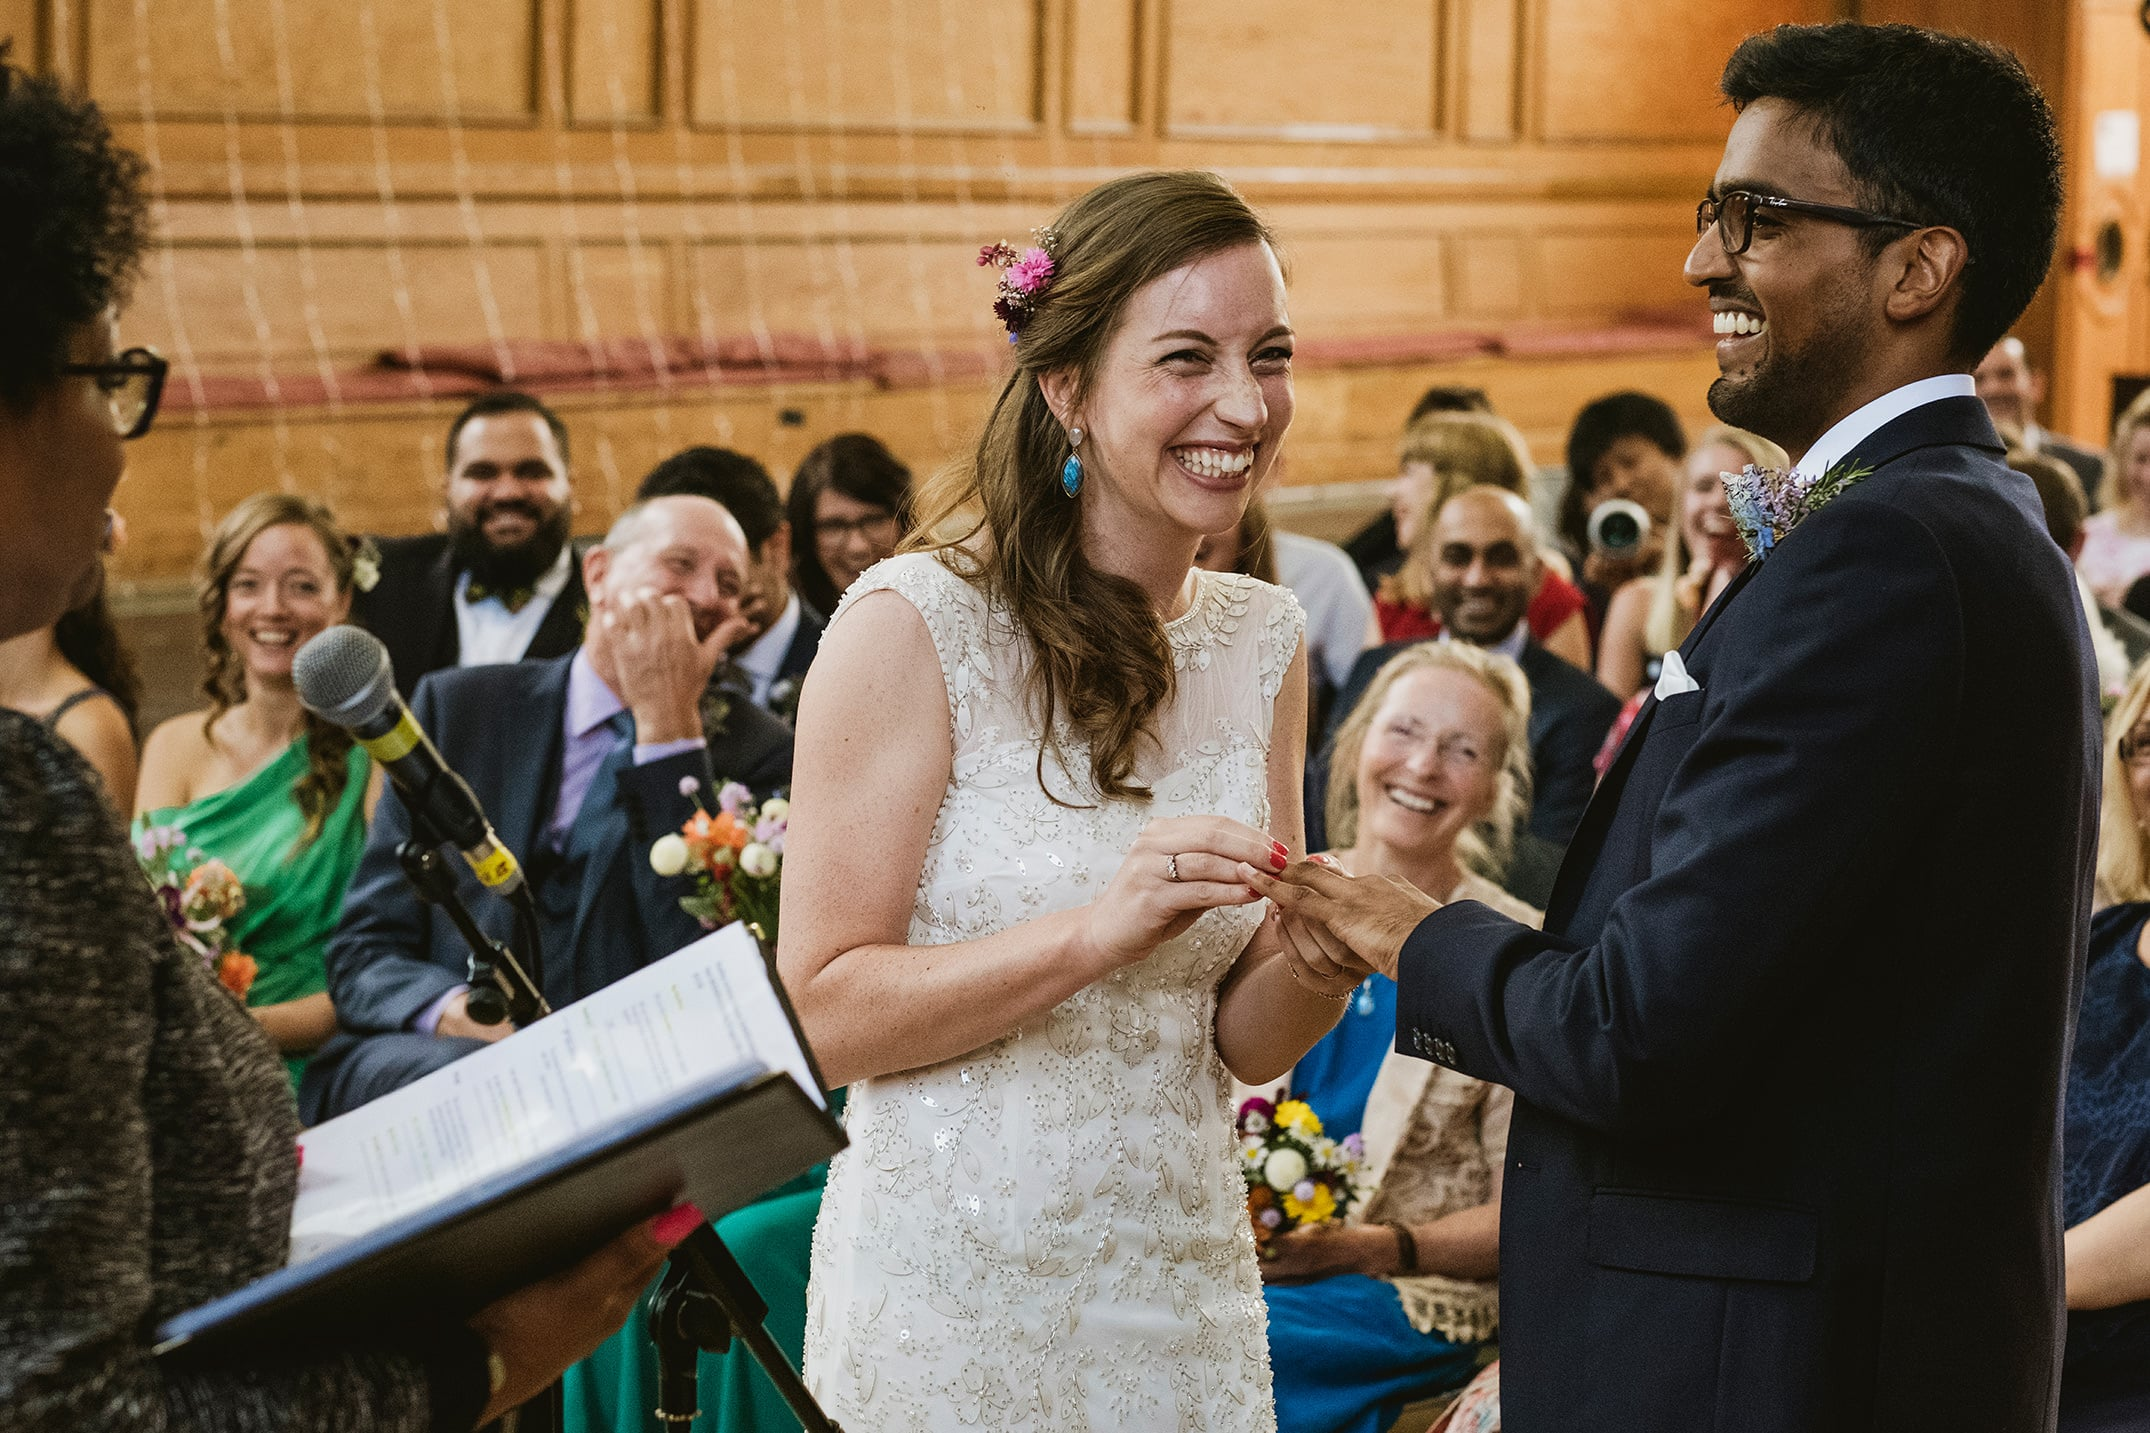 Cecil Sharp House bride and groom exchanging vows in London